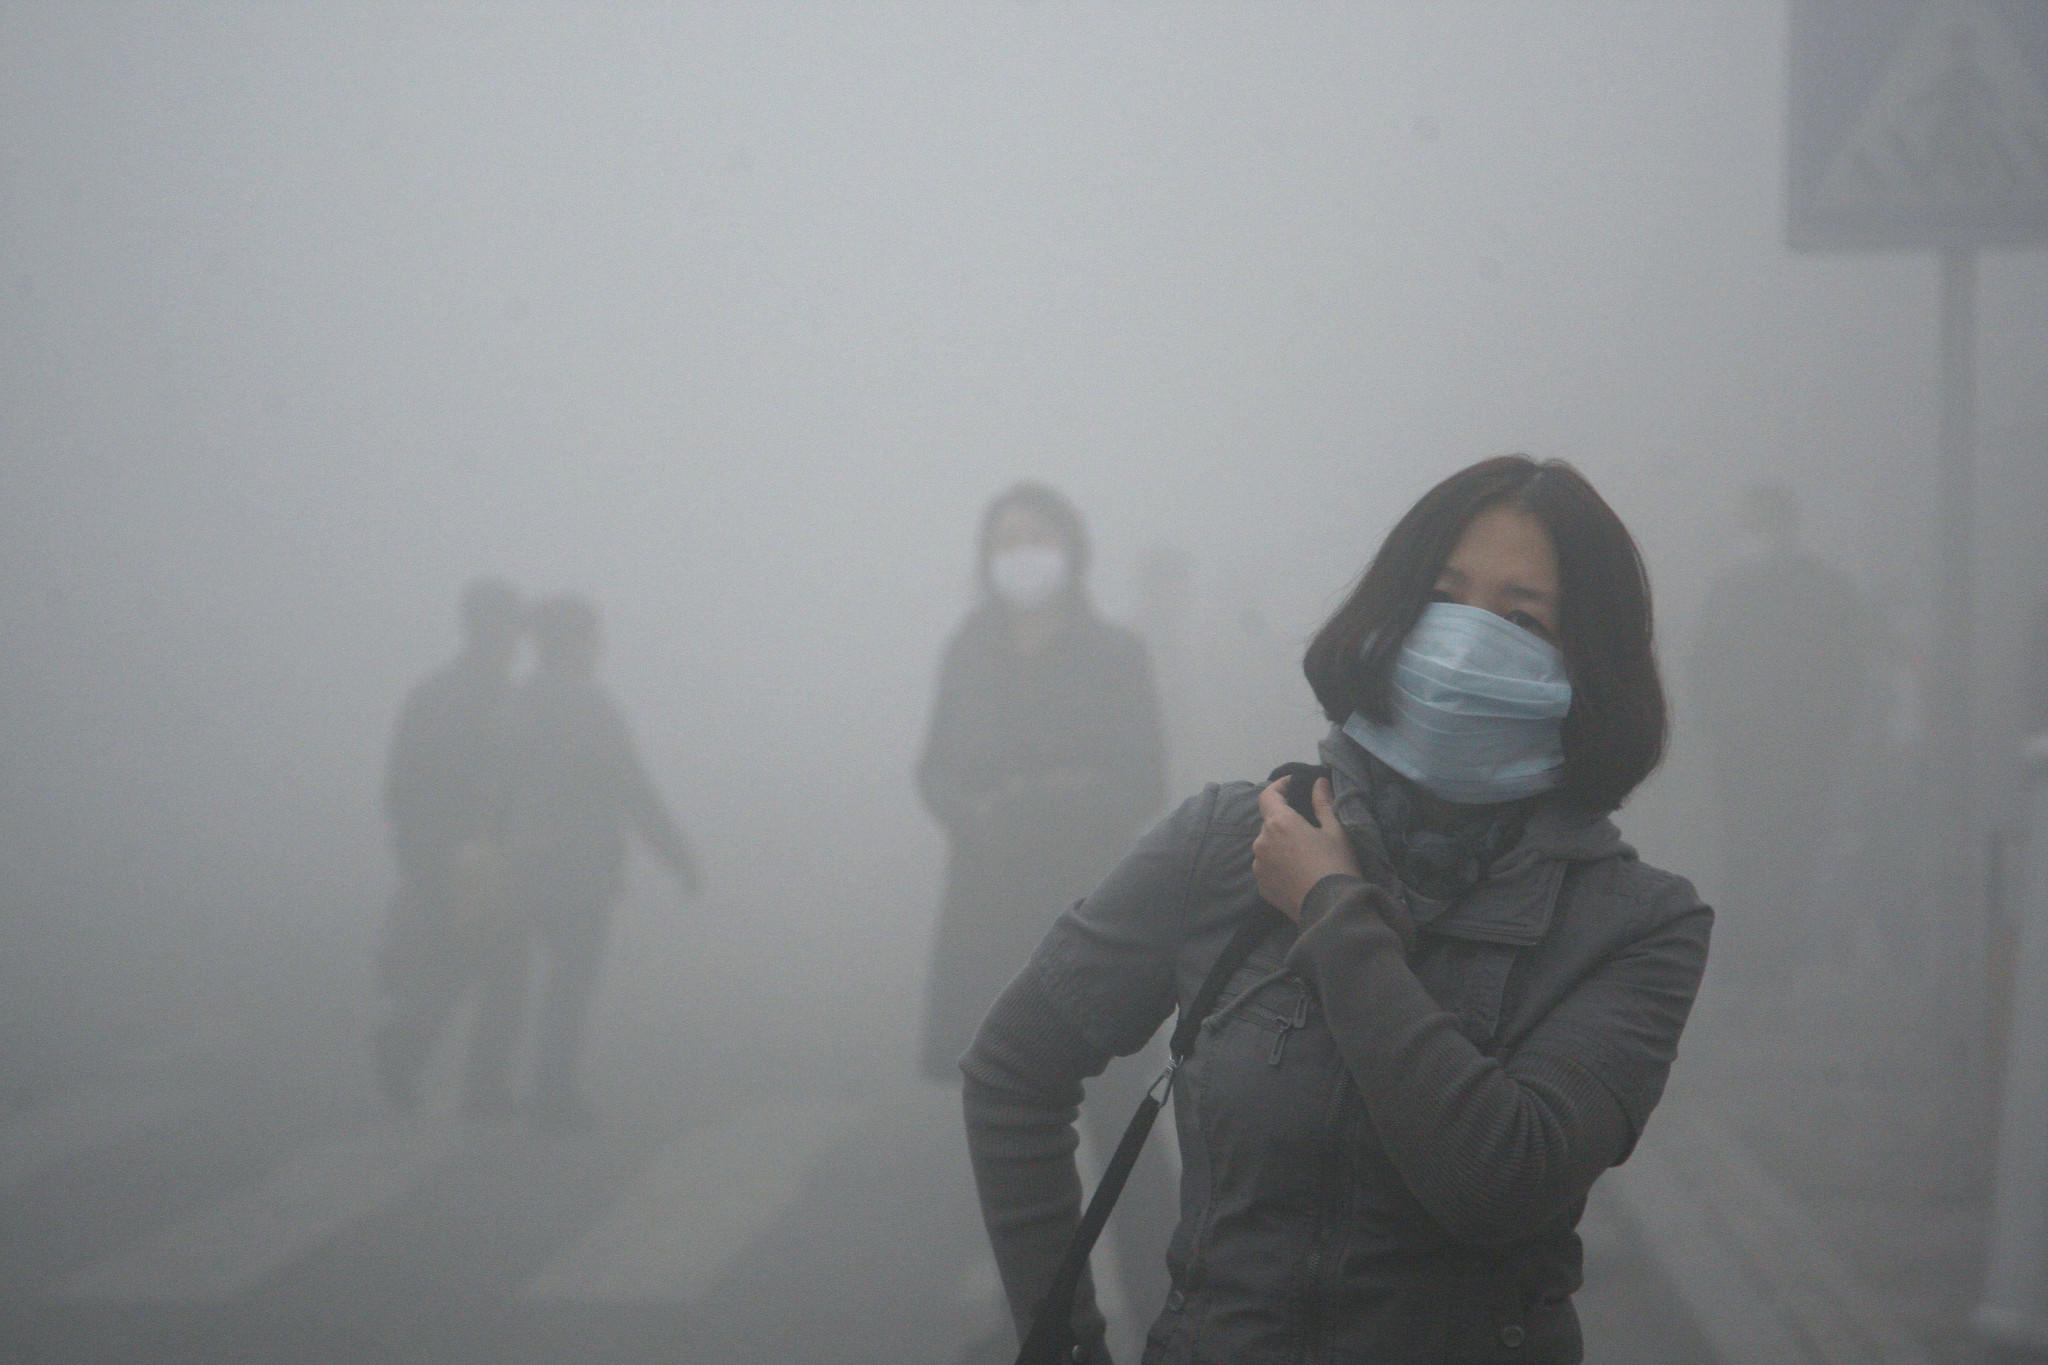 Air pollution caused 7 million deaths globally in 2012, according to new estimates by the World Health Organization. Above, heavily polluted air in the northern Chinese city of Harbin.